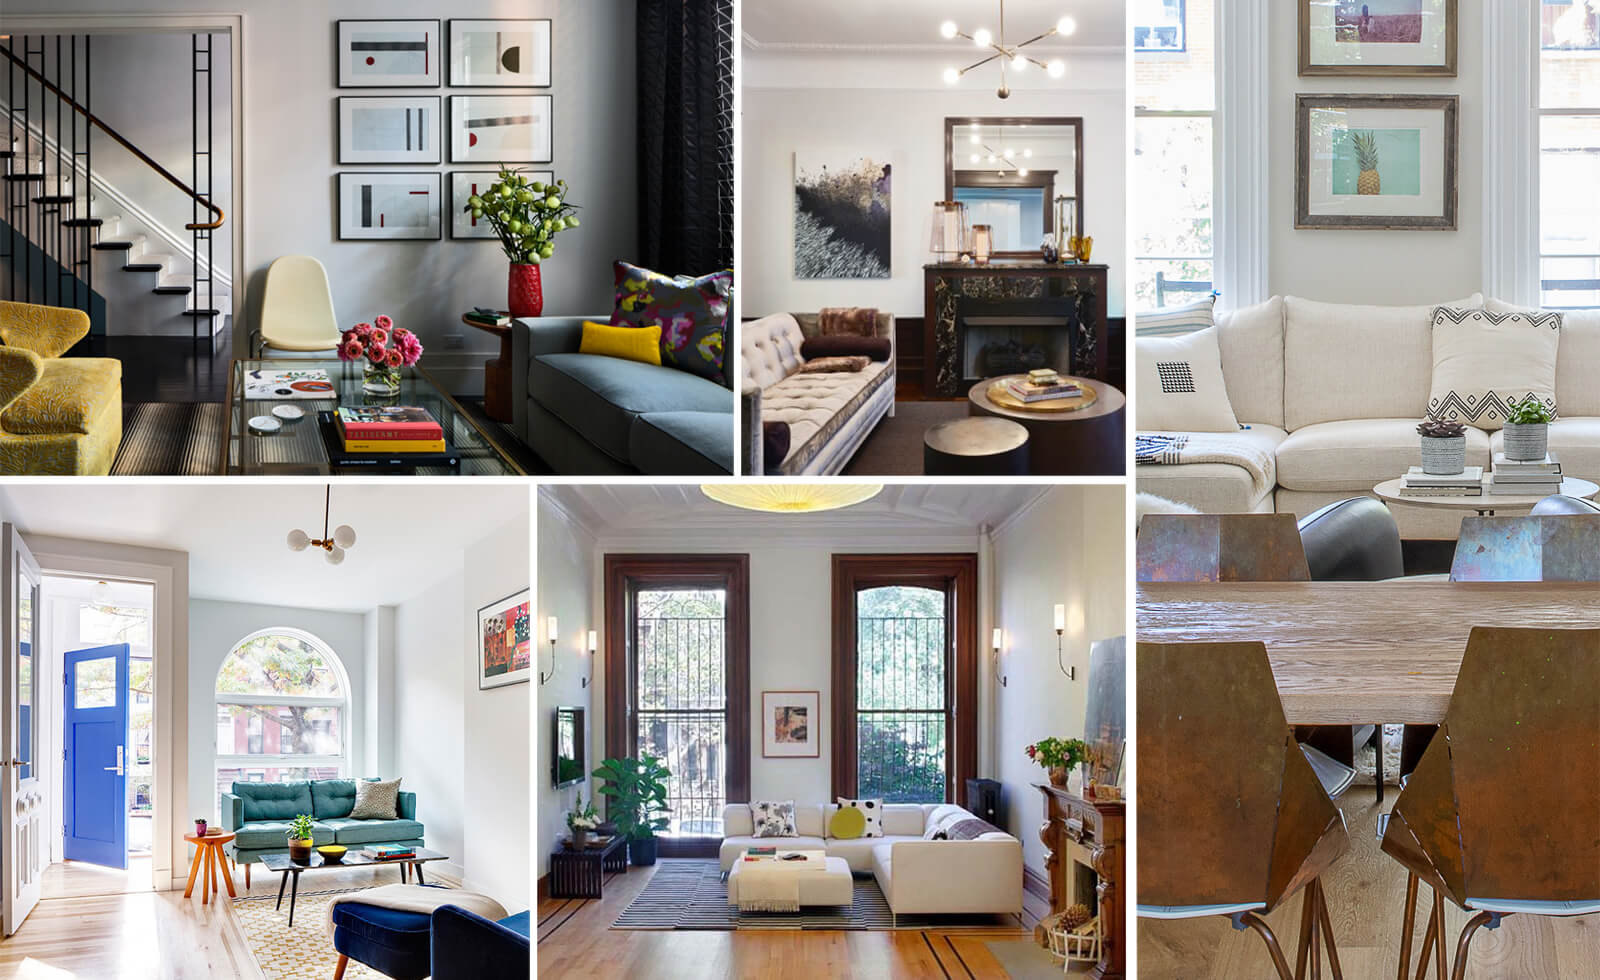 Best Design Firm for Your Home Renovation and Décor